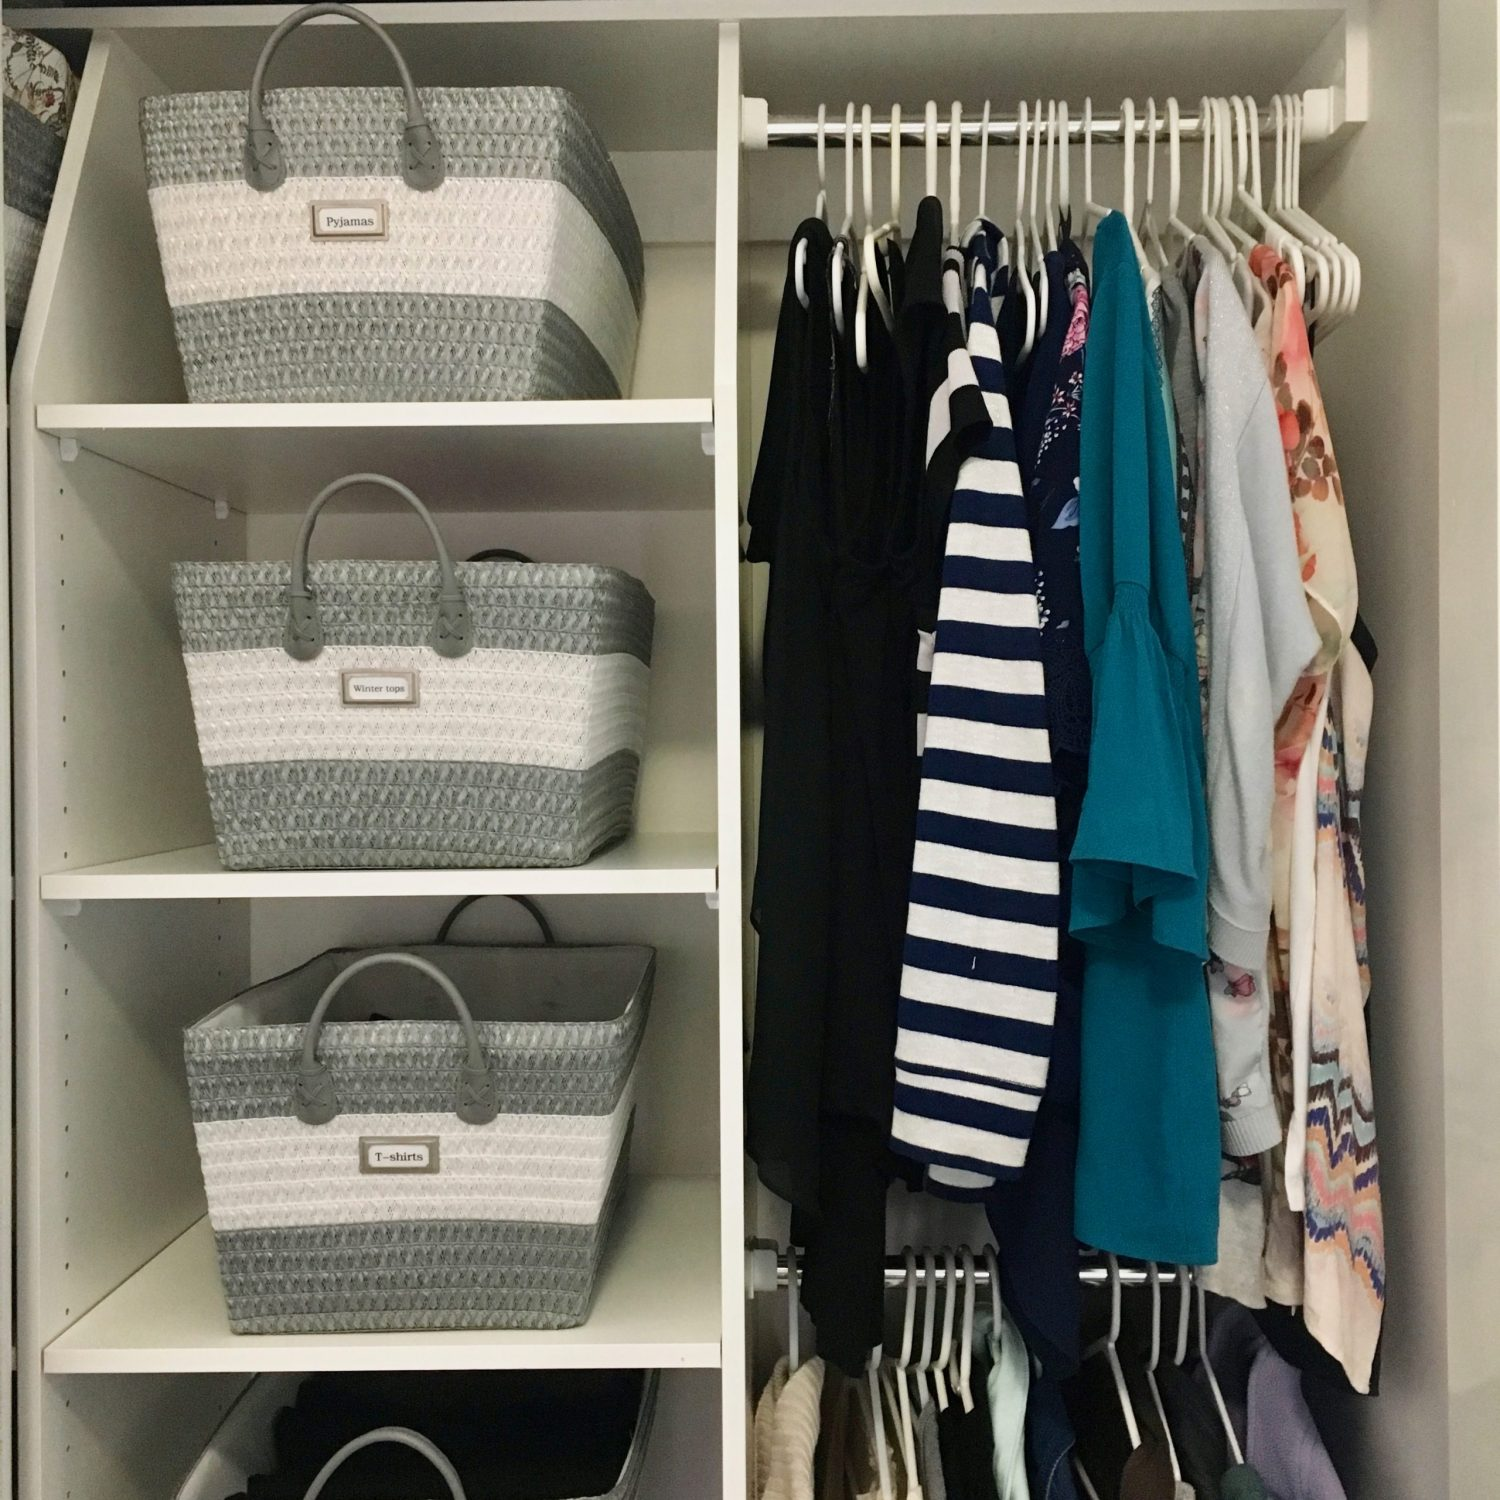 Wardrobe Organisation - The Organising Bee Canberra